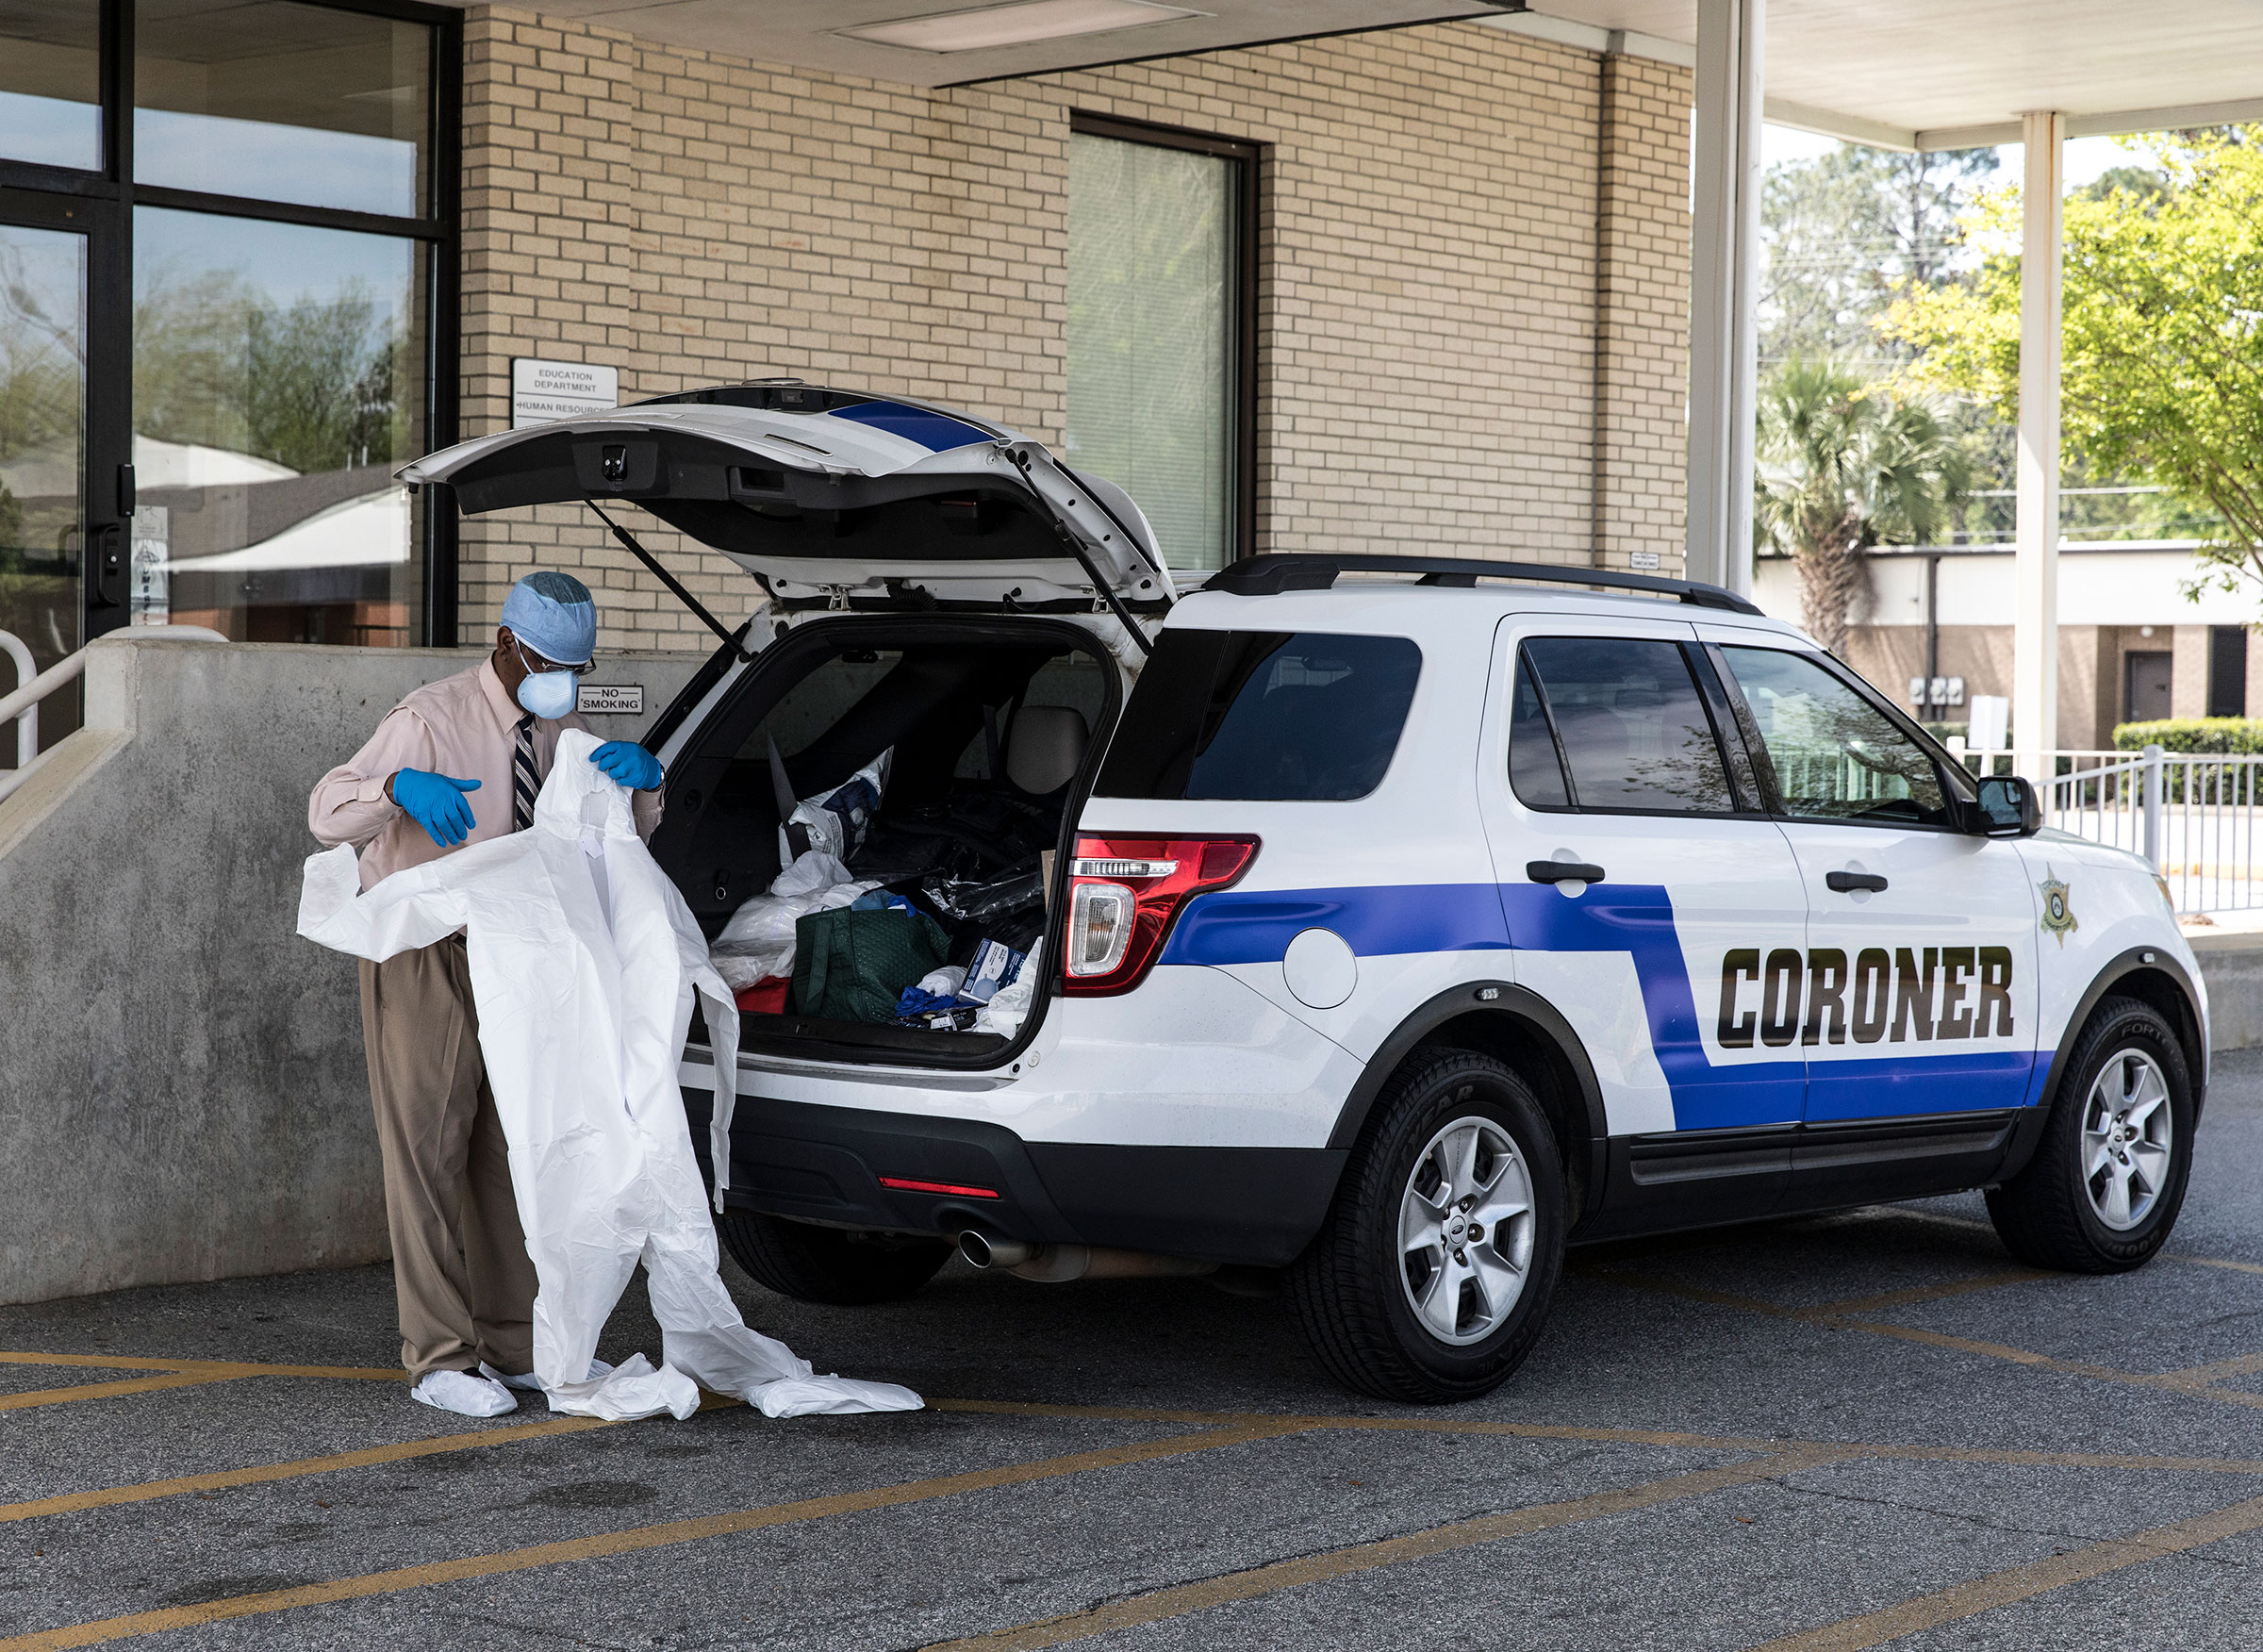 Michael Fowler is the coroner of Dougherty County, Ga. The county had the most coronavirus-related deaths in the state as of April 8, 2020.